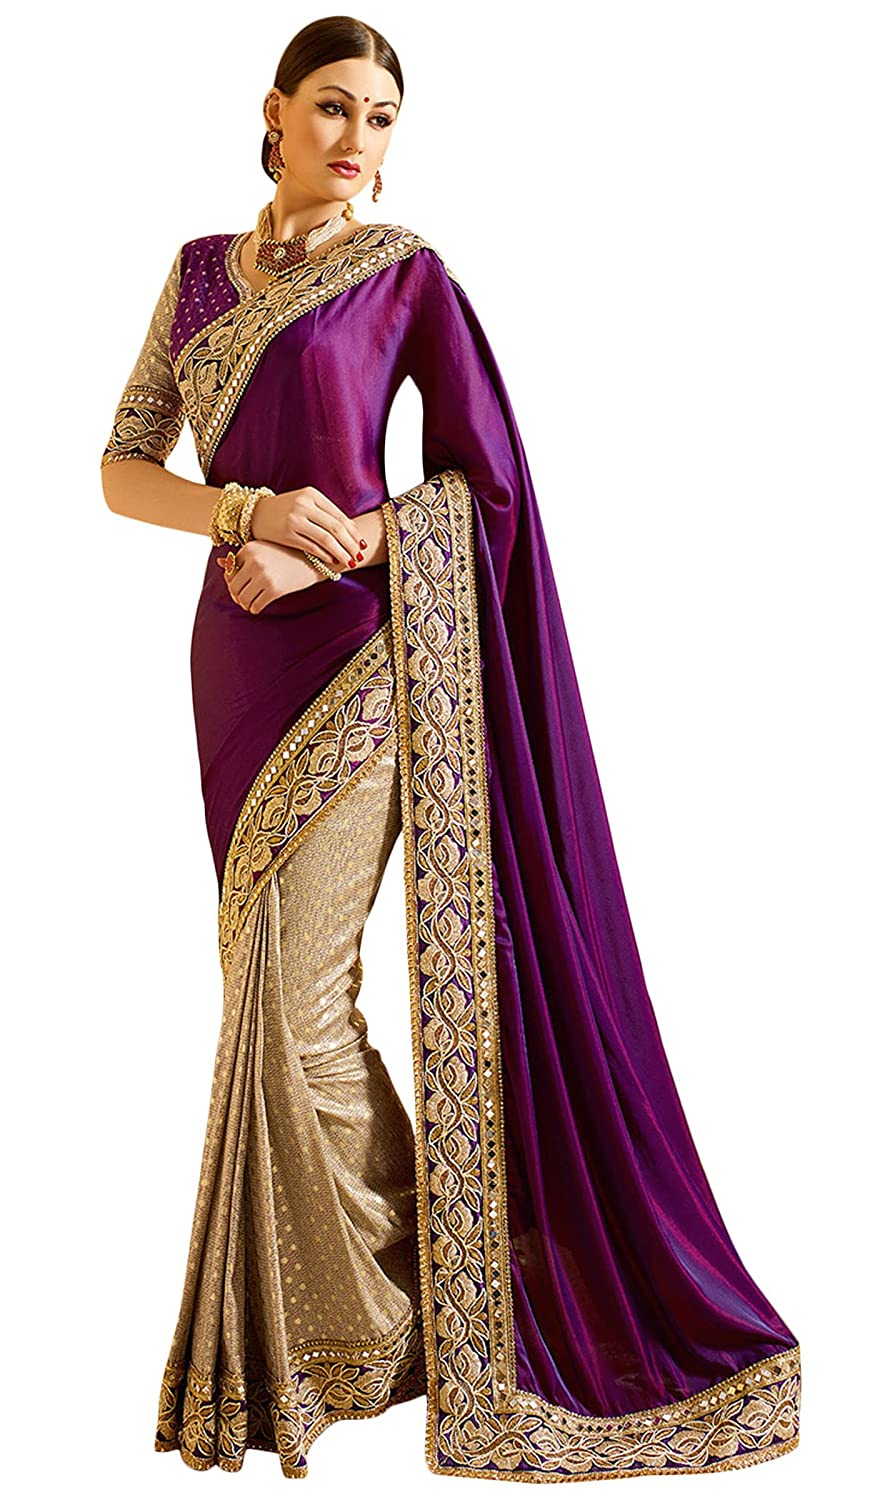 Beautiful Jacquard and Satin Women Sari Indian Border Work Saree Ethinc Wear Swara